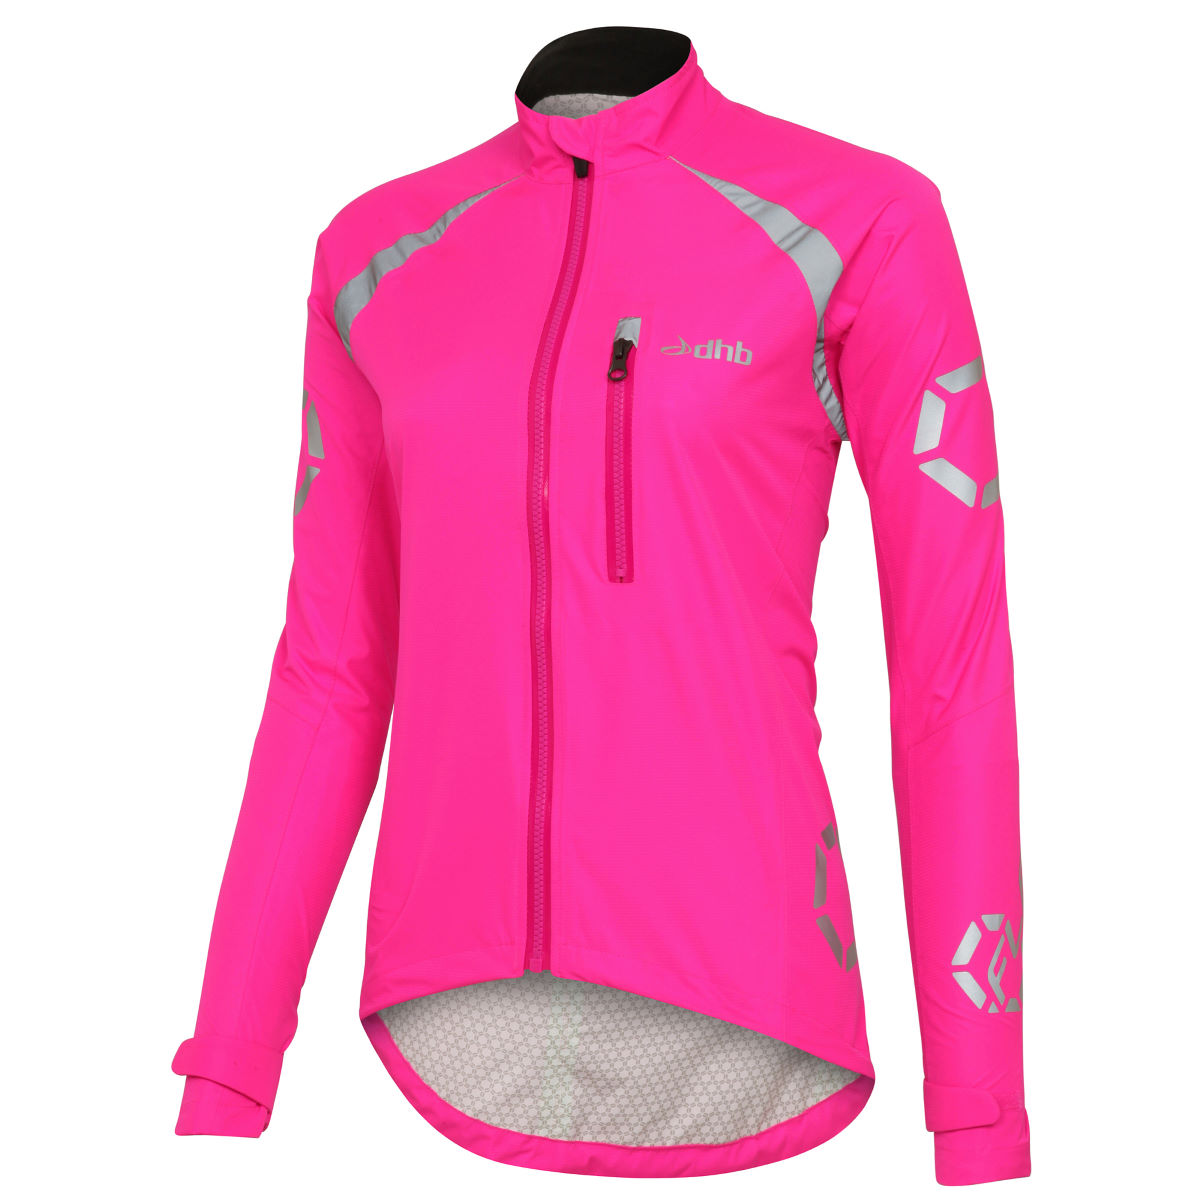 Veste Femme dhb Flashlight (imperméable) - 16 UK Fluro Pink Vestes